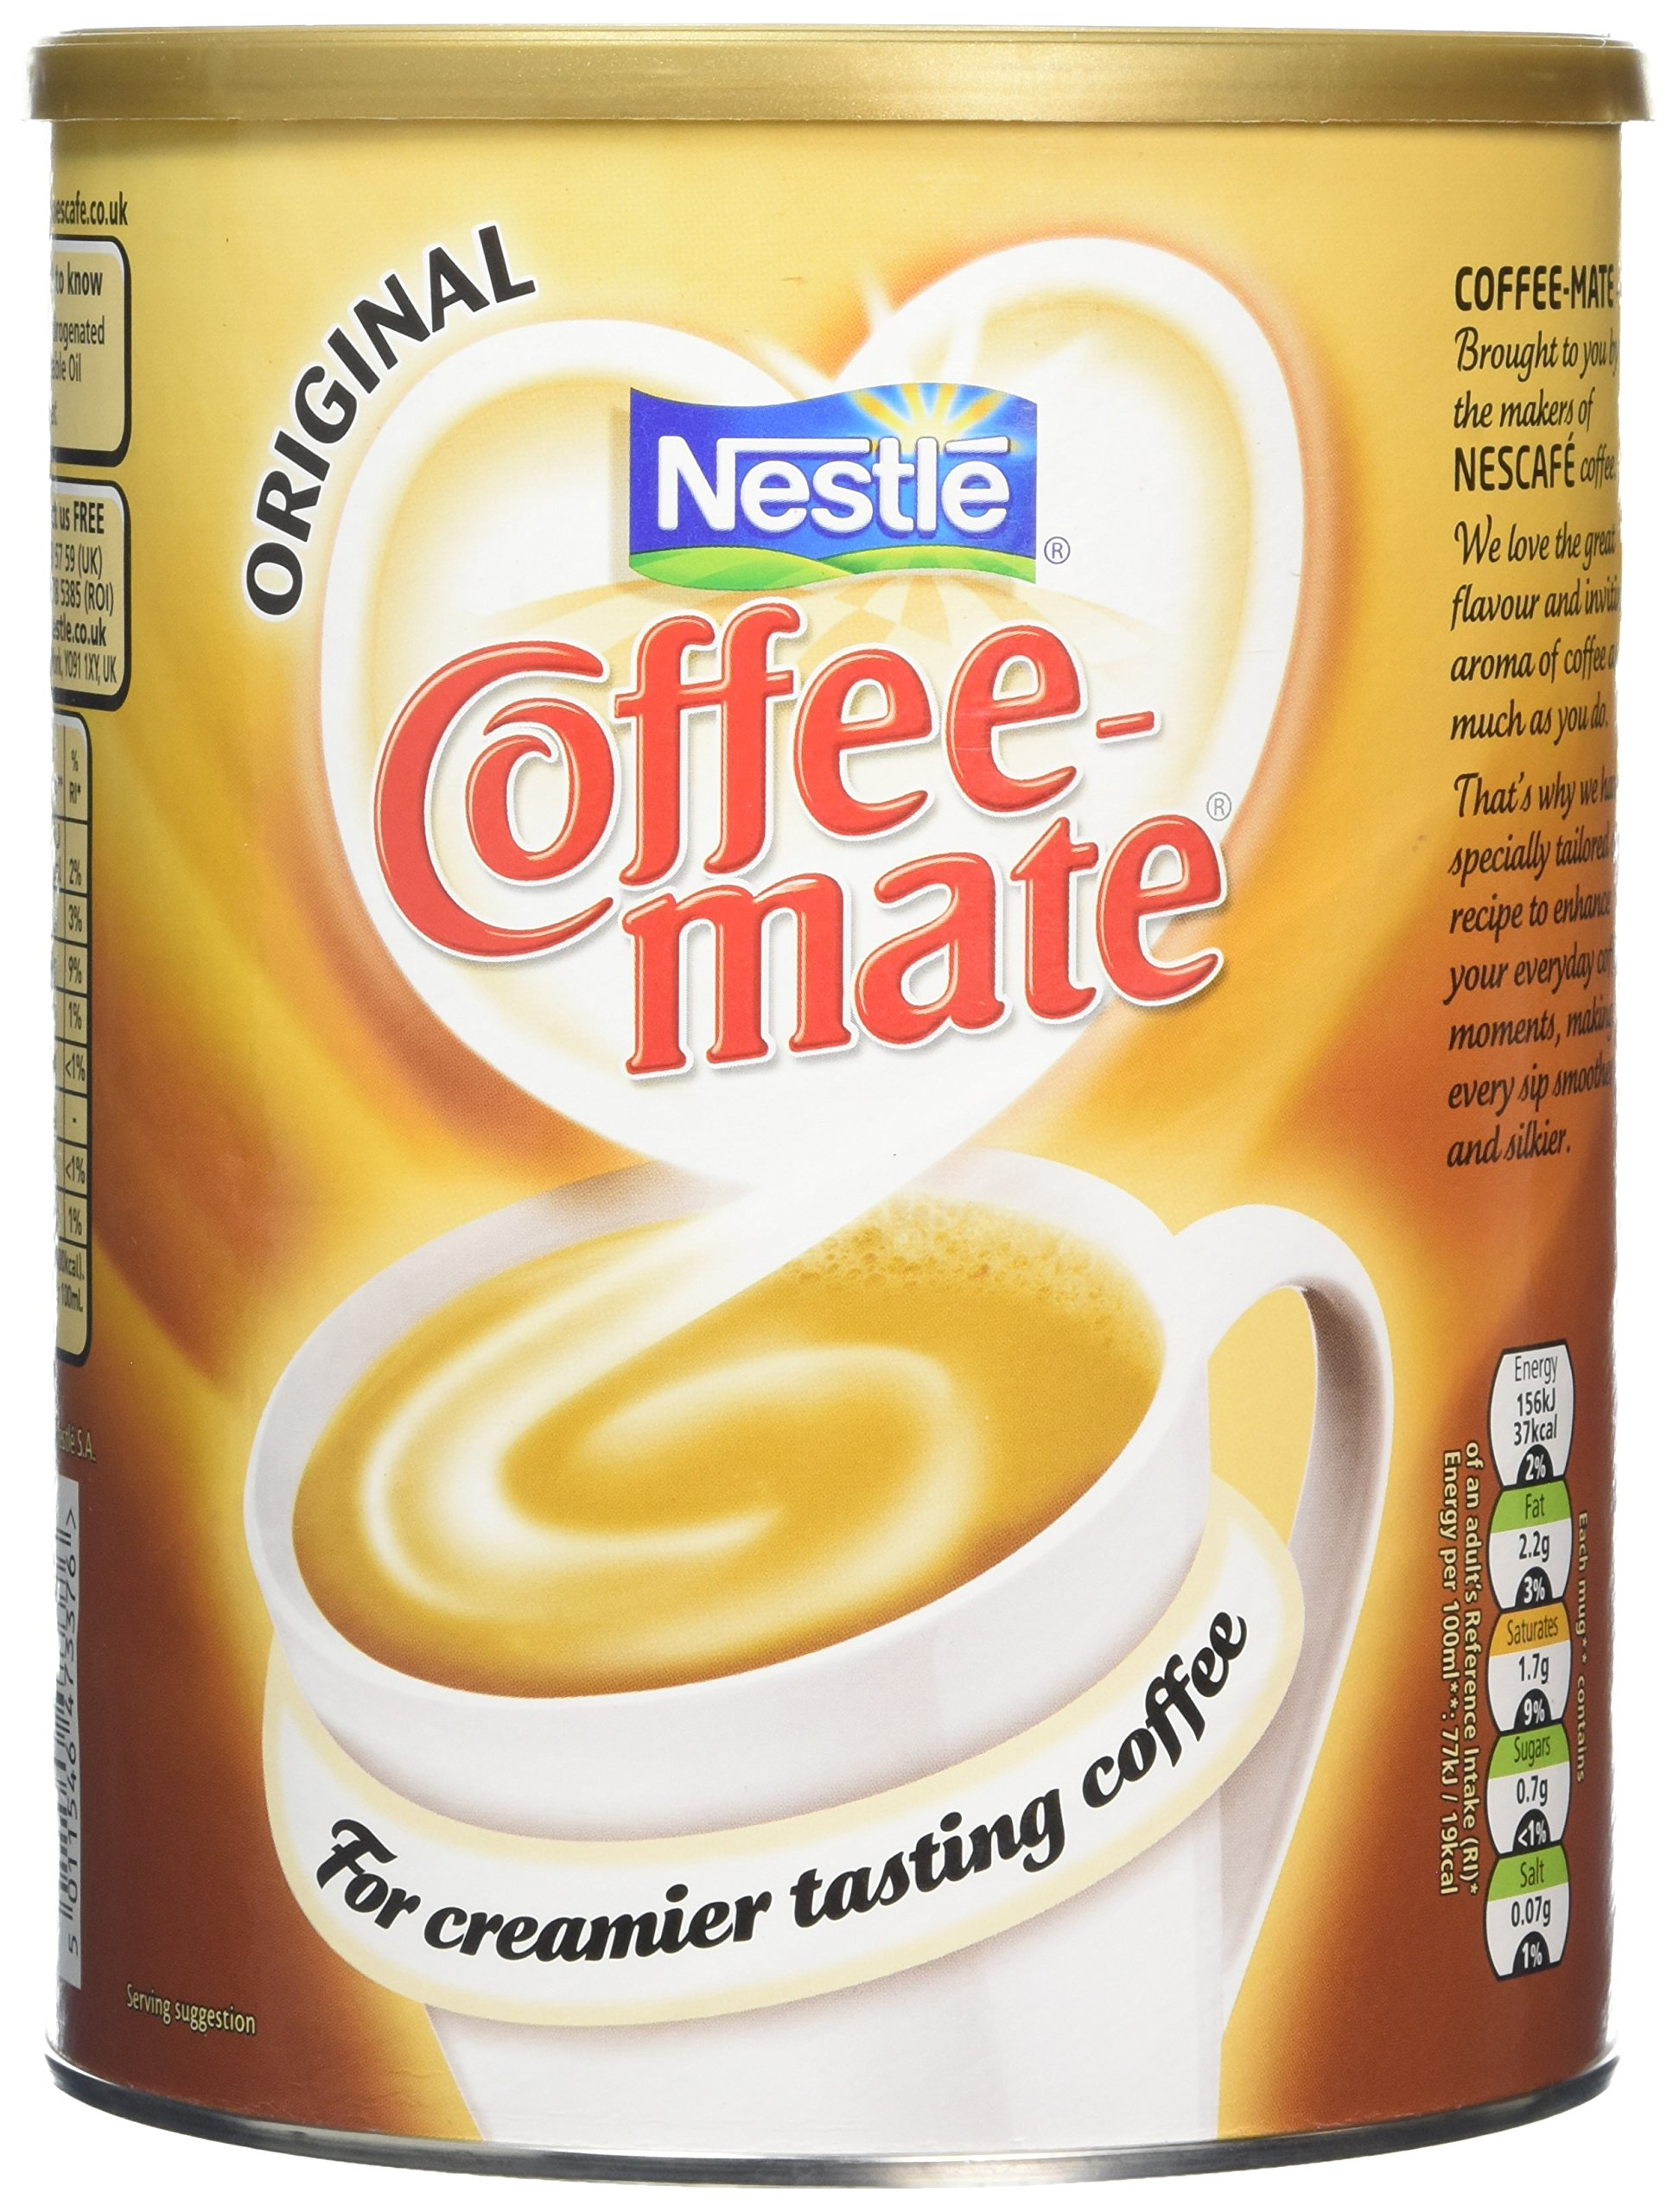 Nestlé Original Coffee Mate, 1kg